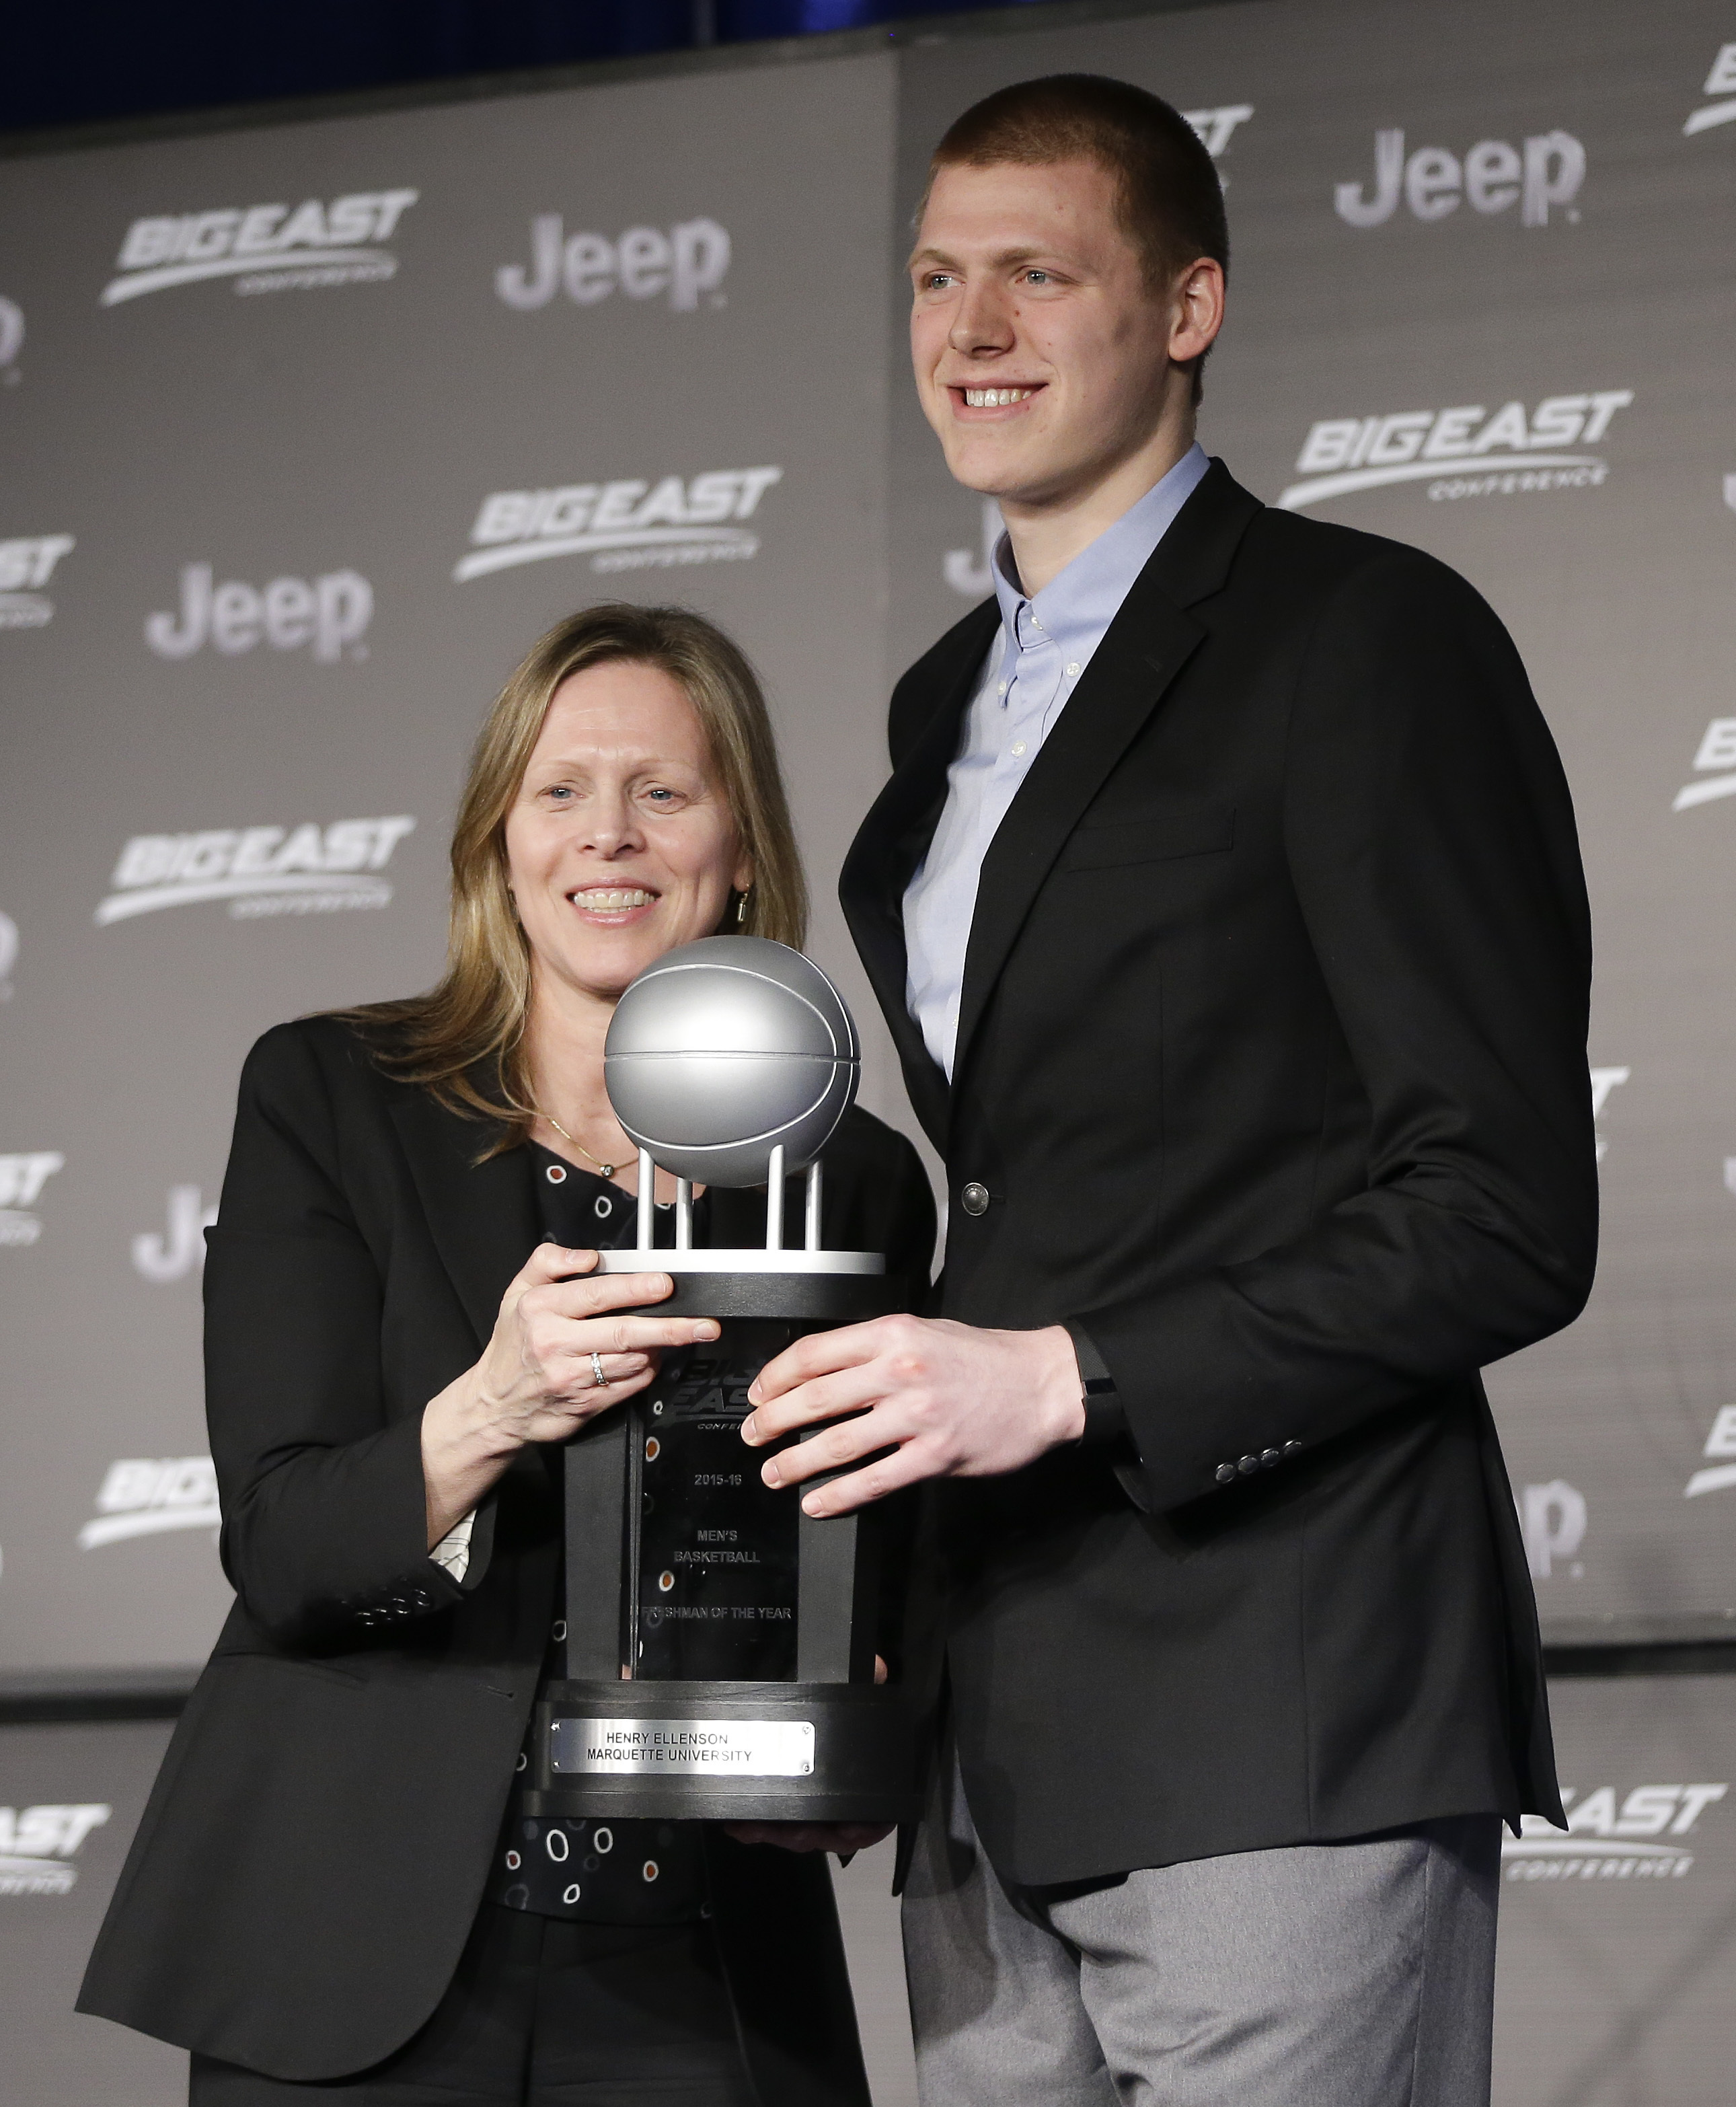 Marquette forward Henry Ellenson, right, poses for photos with Big East Commissioner Val Ackerman after receiving the award for conference freshman of the year, Wednesday, March 9, 2016, in New York. (AP Photo/Julie Jacobson)